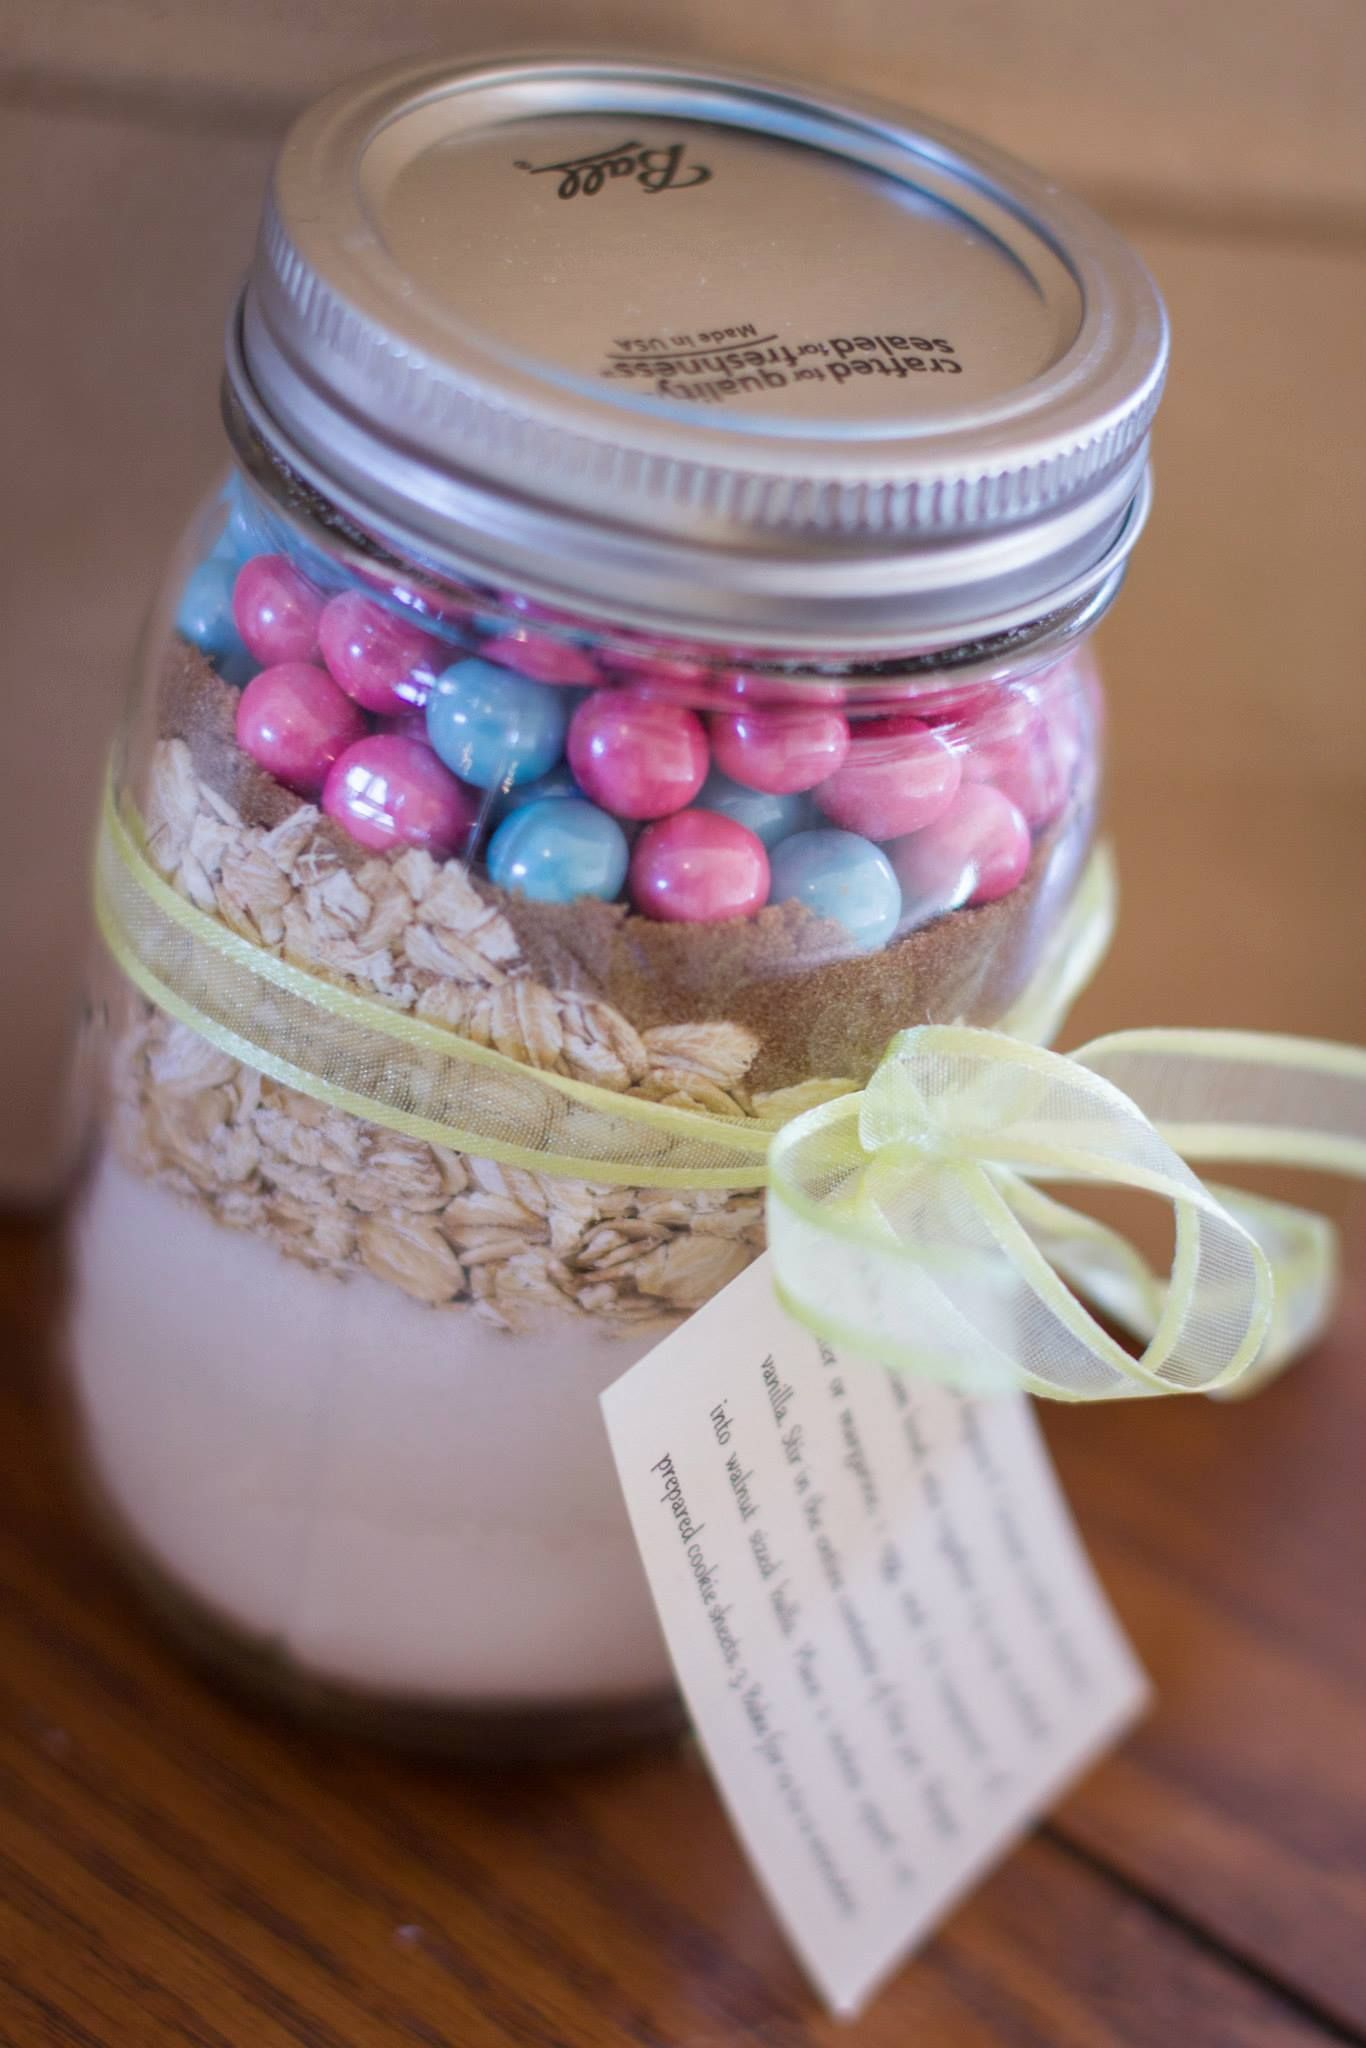 Baby Shower Ideas For A Girl Baby Shower Party Favors Cookie Mix In A Ball Mas Mason Jar Baby Shower Baby Shower Mason Jar Favors Baby Shower Party Favors Girl